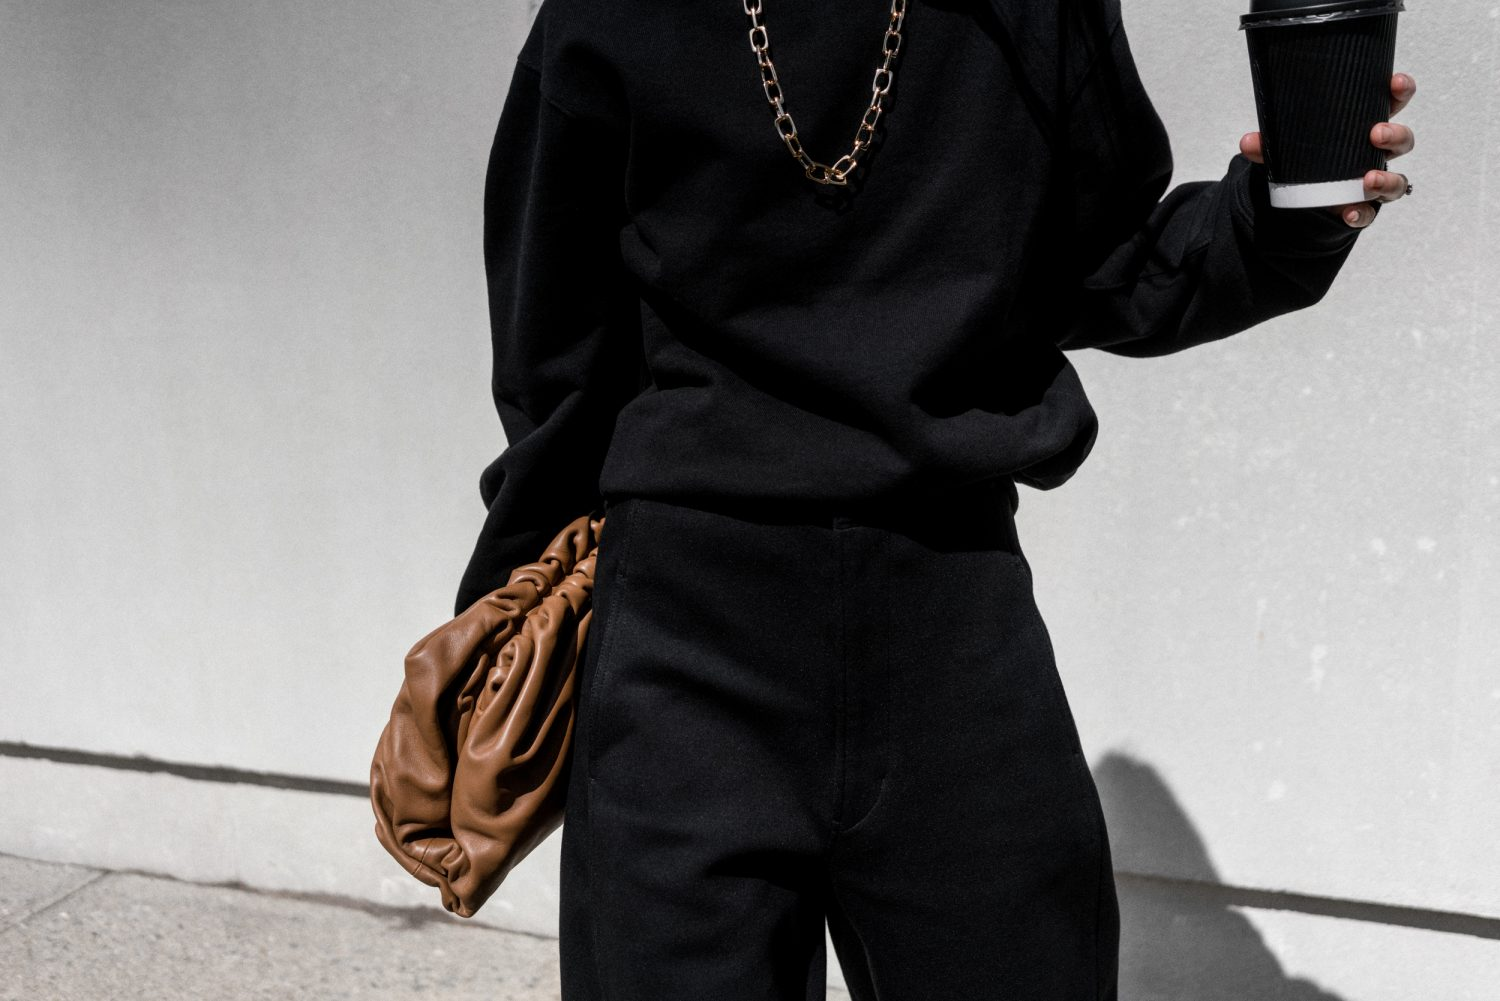 Reinventing the Sweatsuit